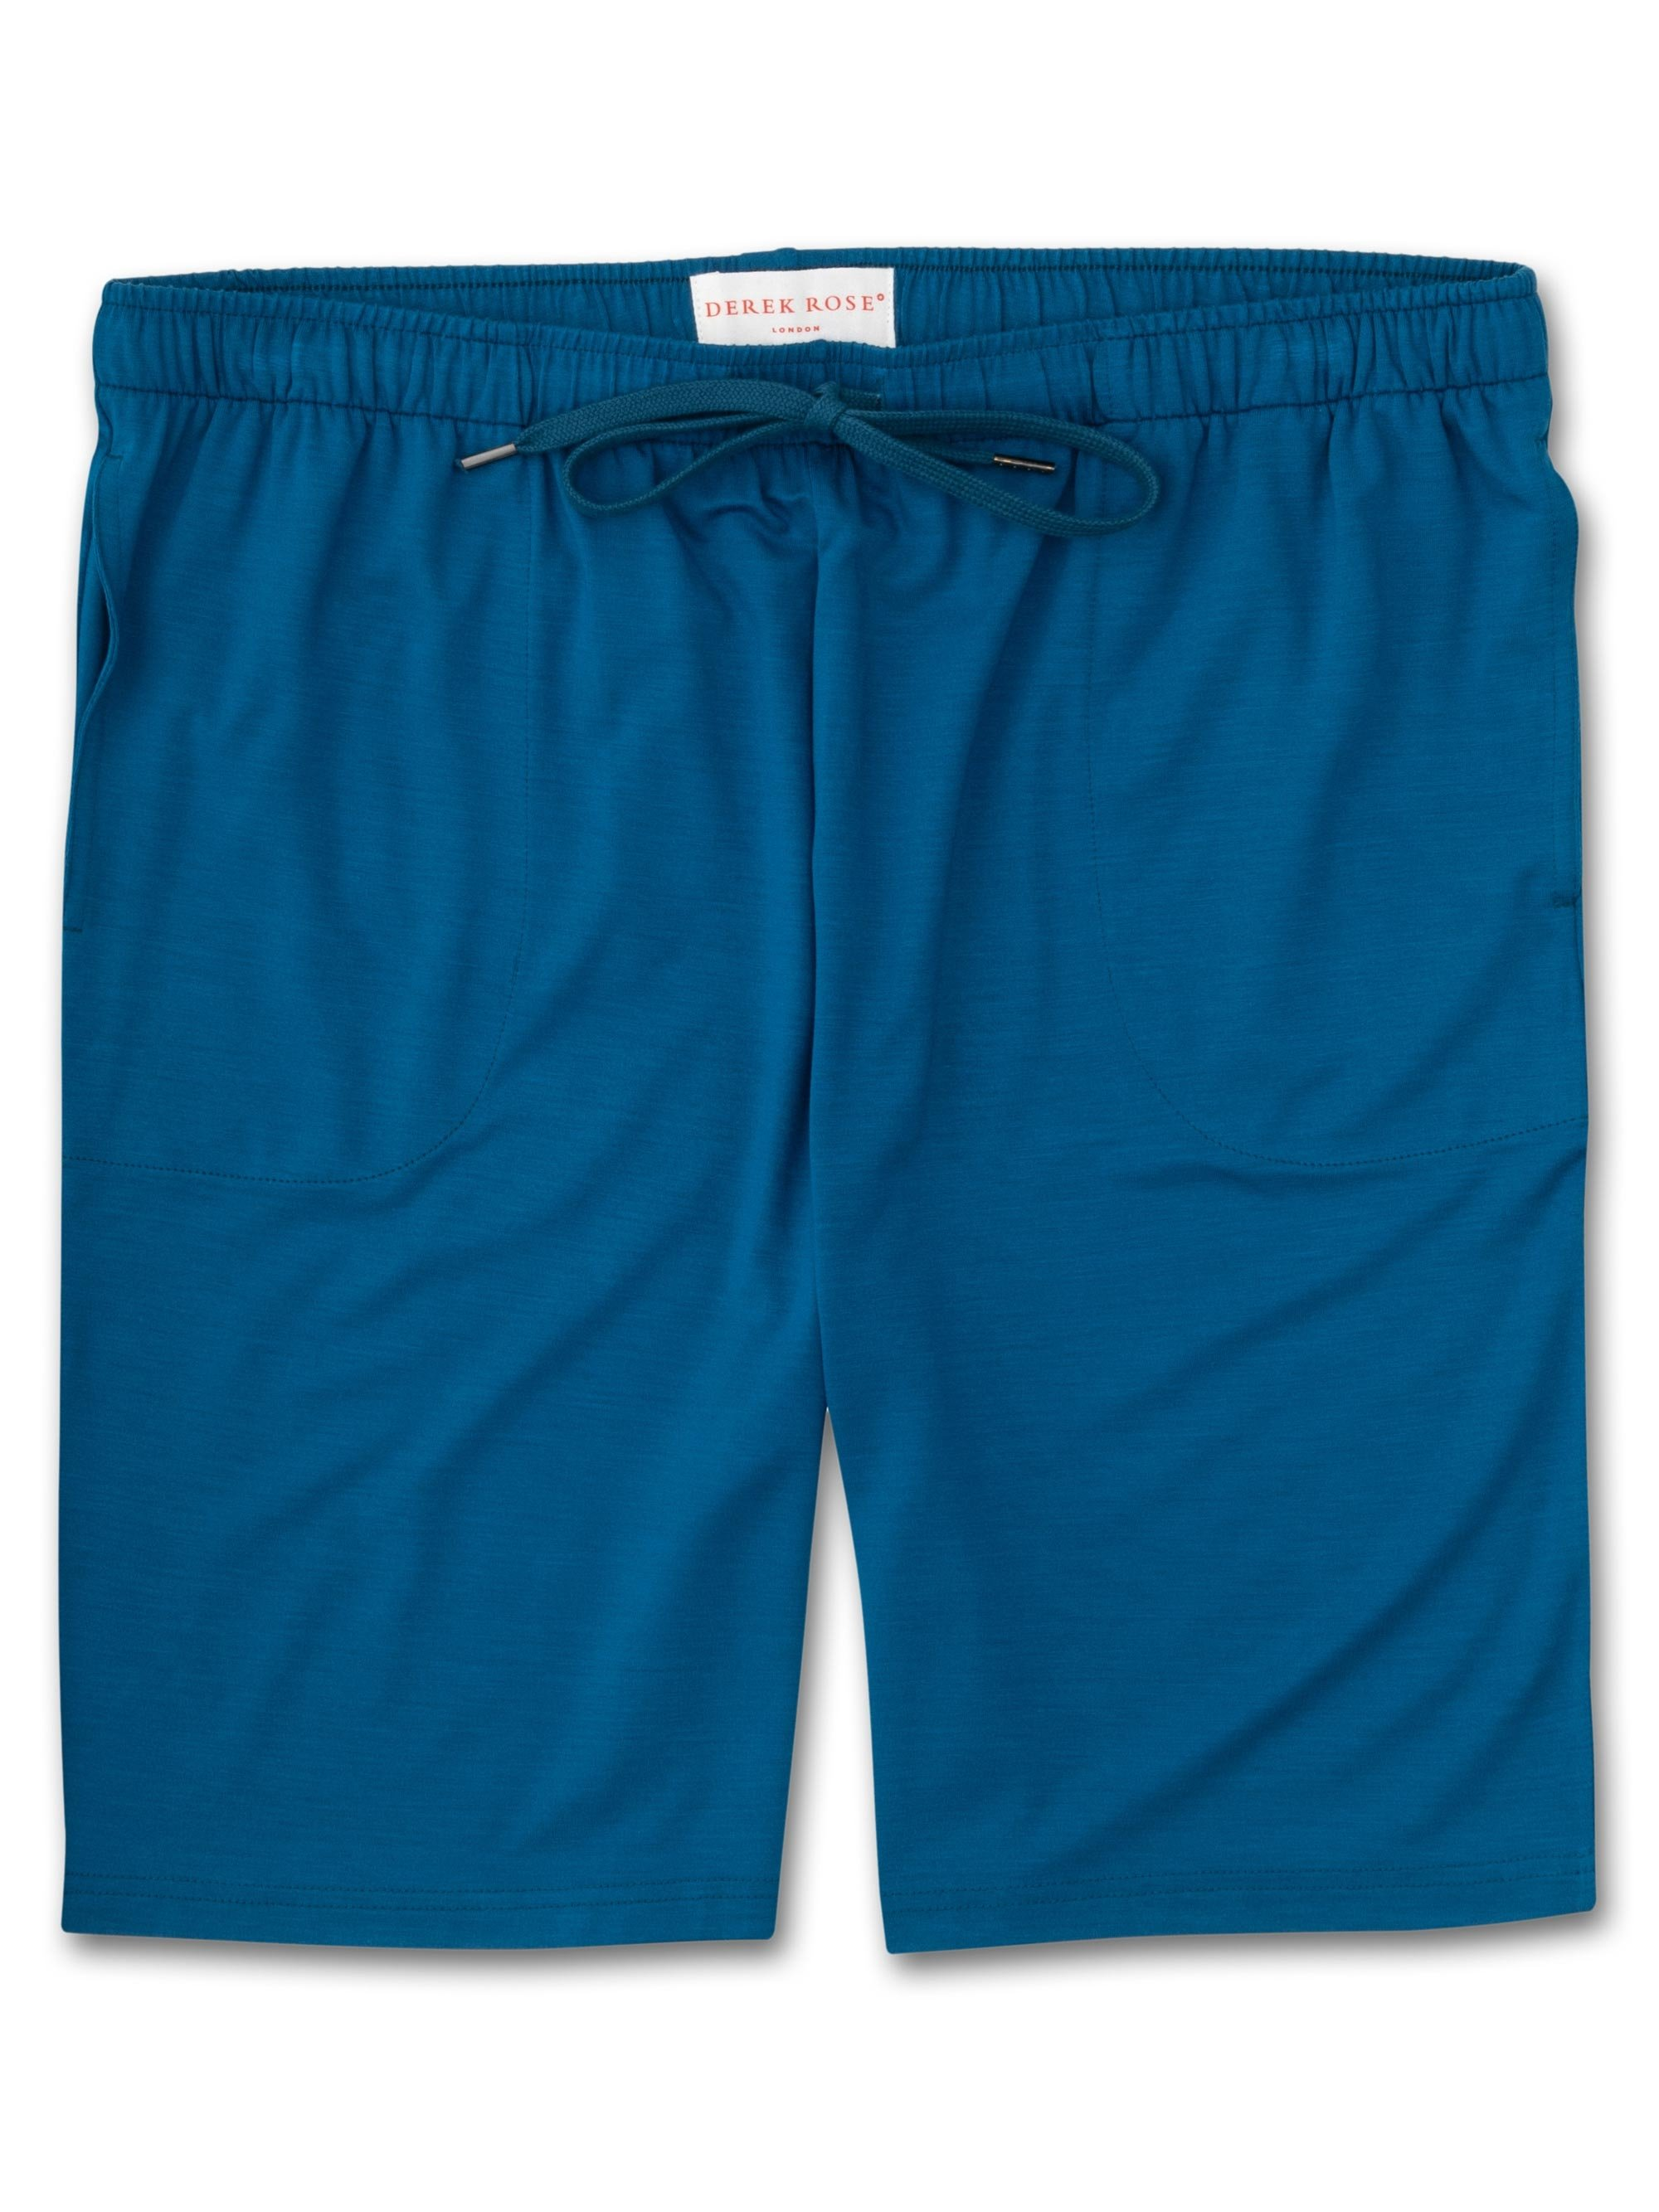 Men's Jersey Shorts Basel 7 Micro Modal Stretch Ocean